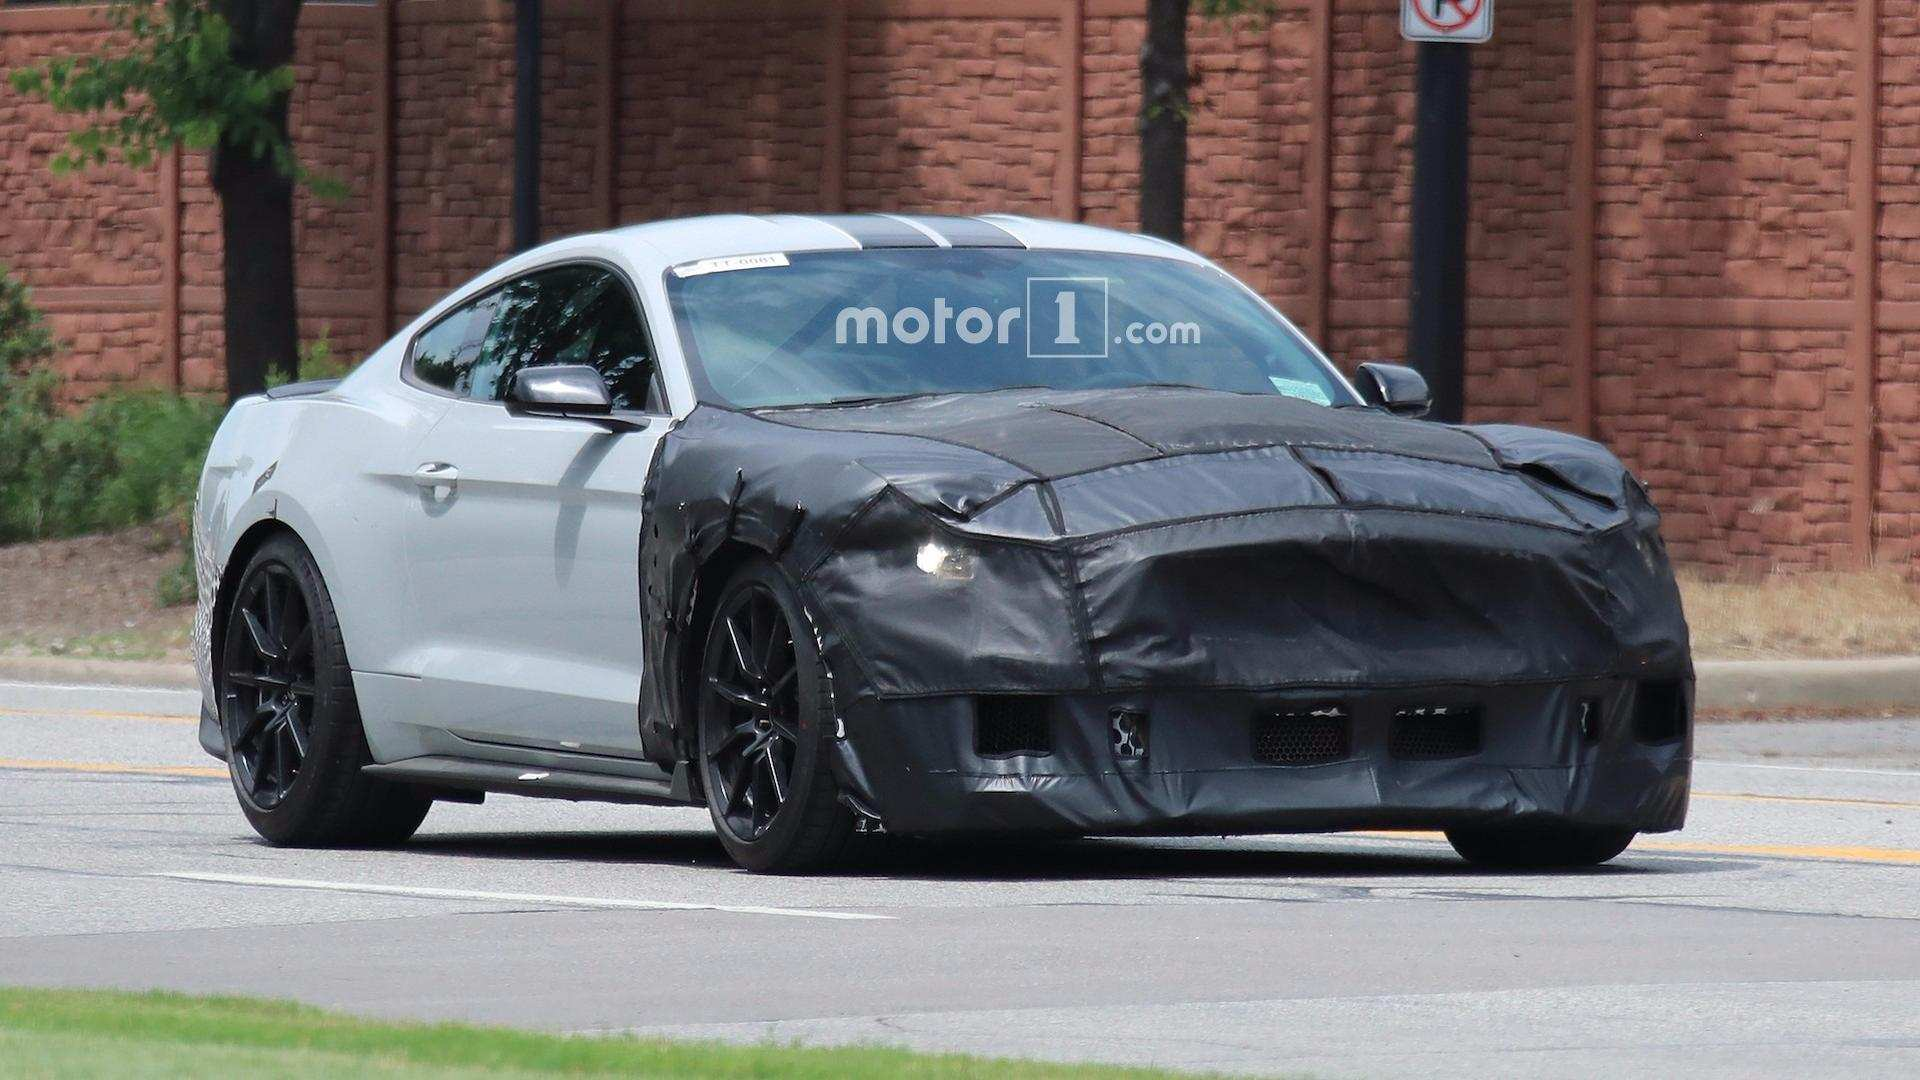 44 A 2020 The Spy Shots Ford Mustang Svt Gt 500 Exterior And Interior